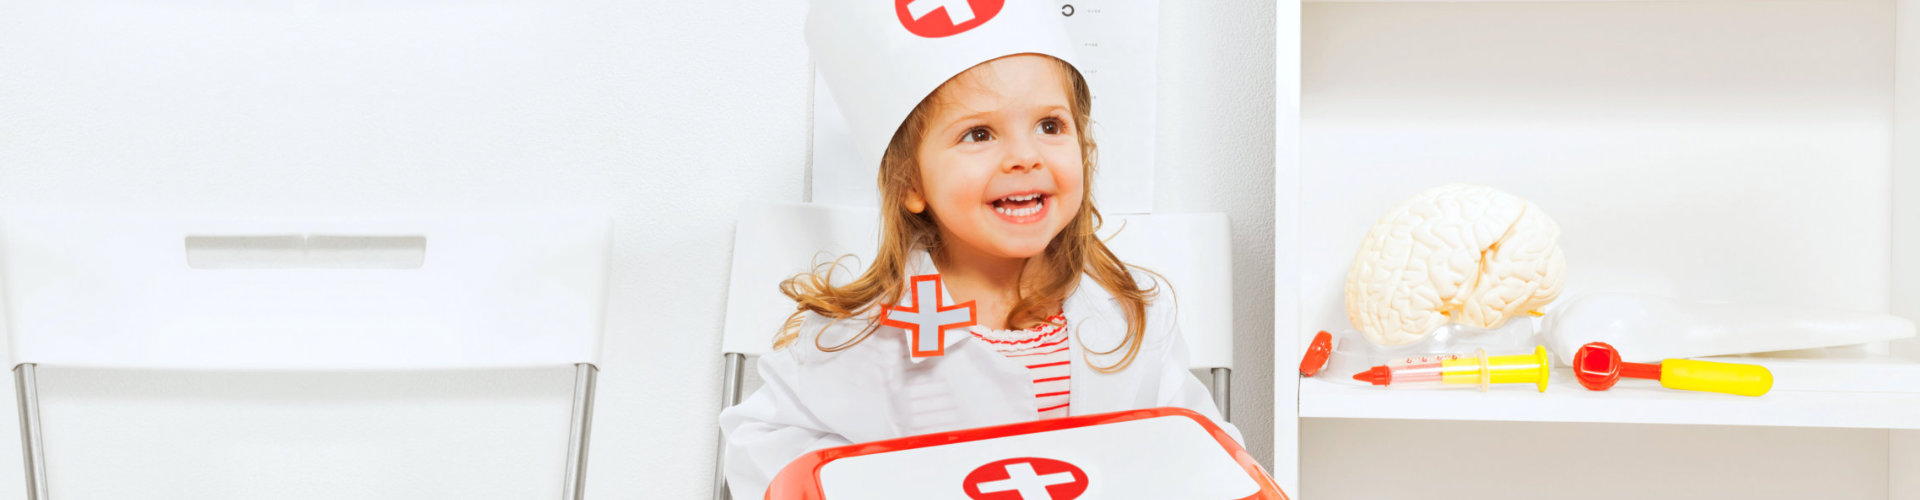 young girl wearinga nurse's hat